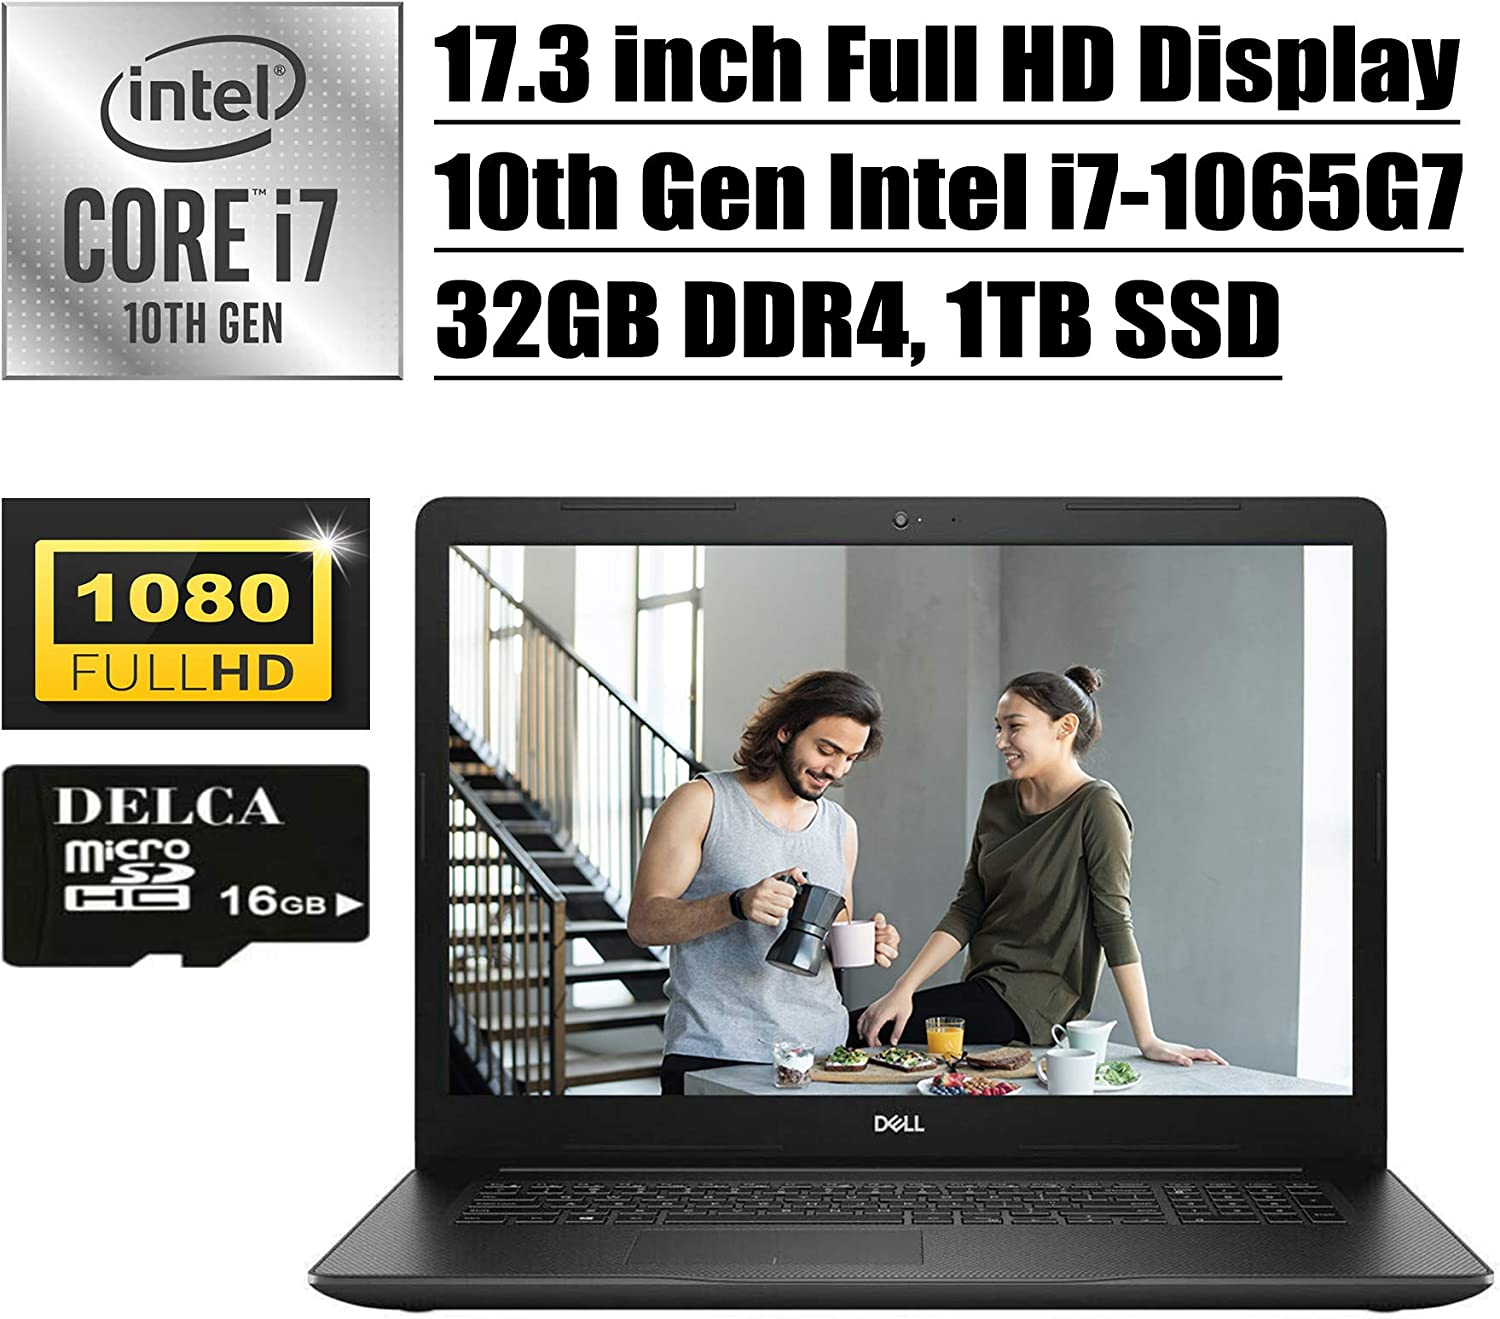 Dell Inspiron 17 3000 3793 Premium 2020 Business Laptop I 17.3 inch Full HD Display I 10th Gen Intel Quad-Core i7-1065G7 I 32GB DDR4 1TB SSD I WiFi HDMI Win 10 + Delca 16GB Micro SD Card